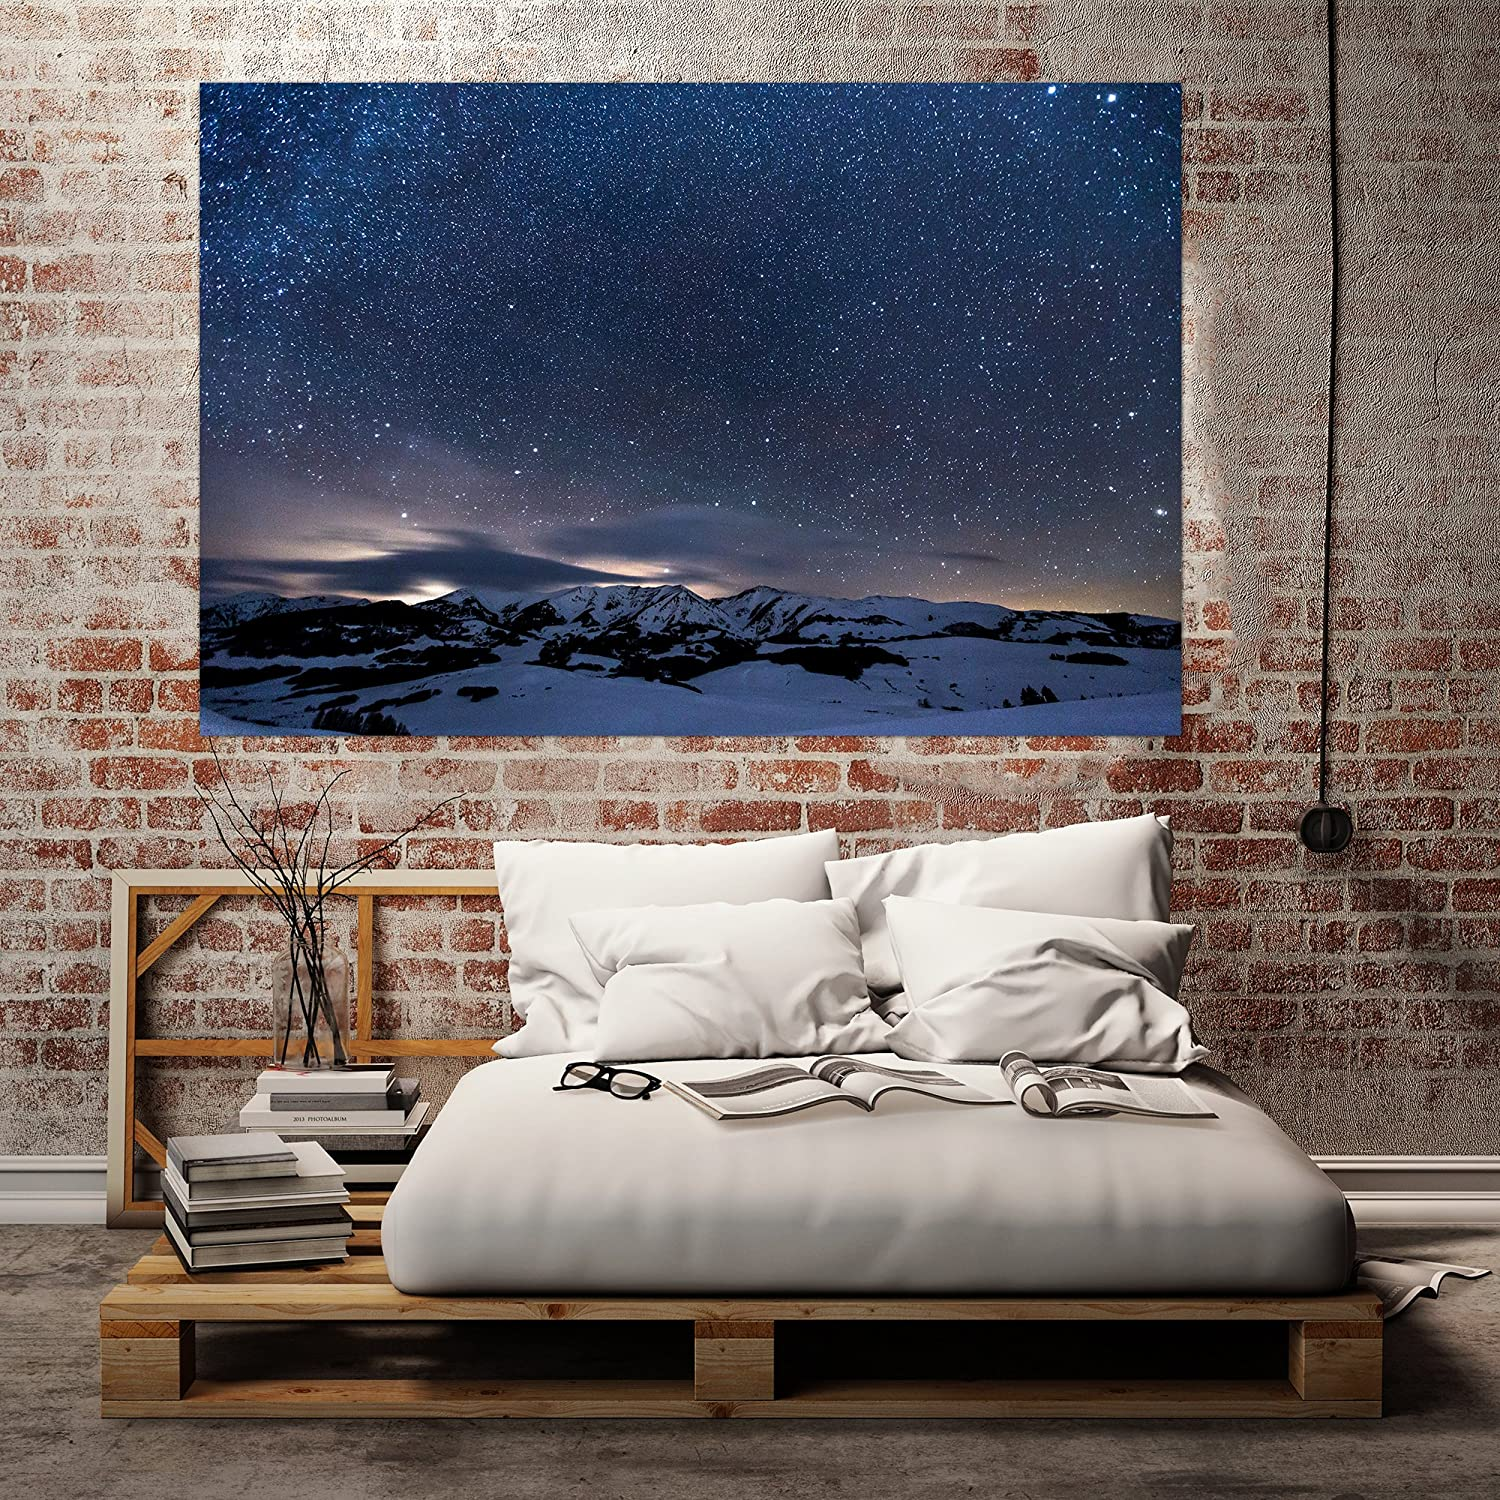 Amazon Starry Night Sky Snow Mountainsアートプリント壁装飾